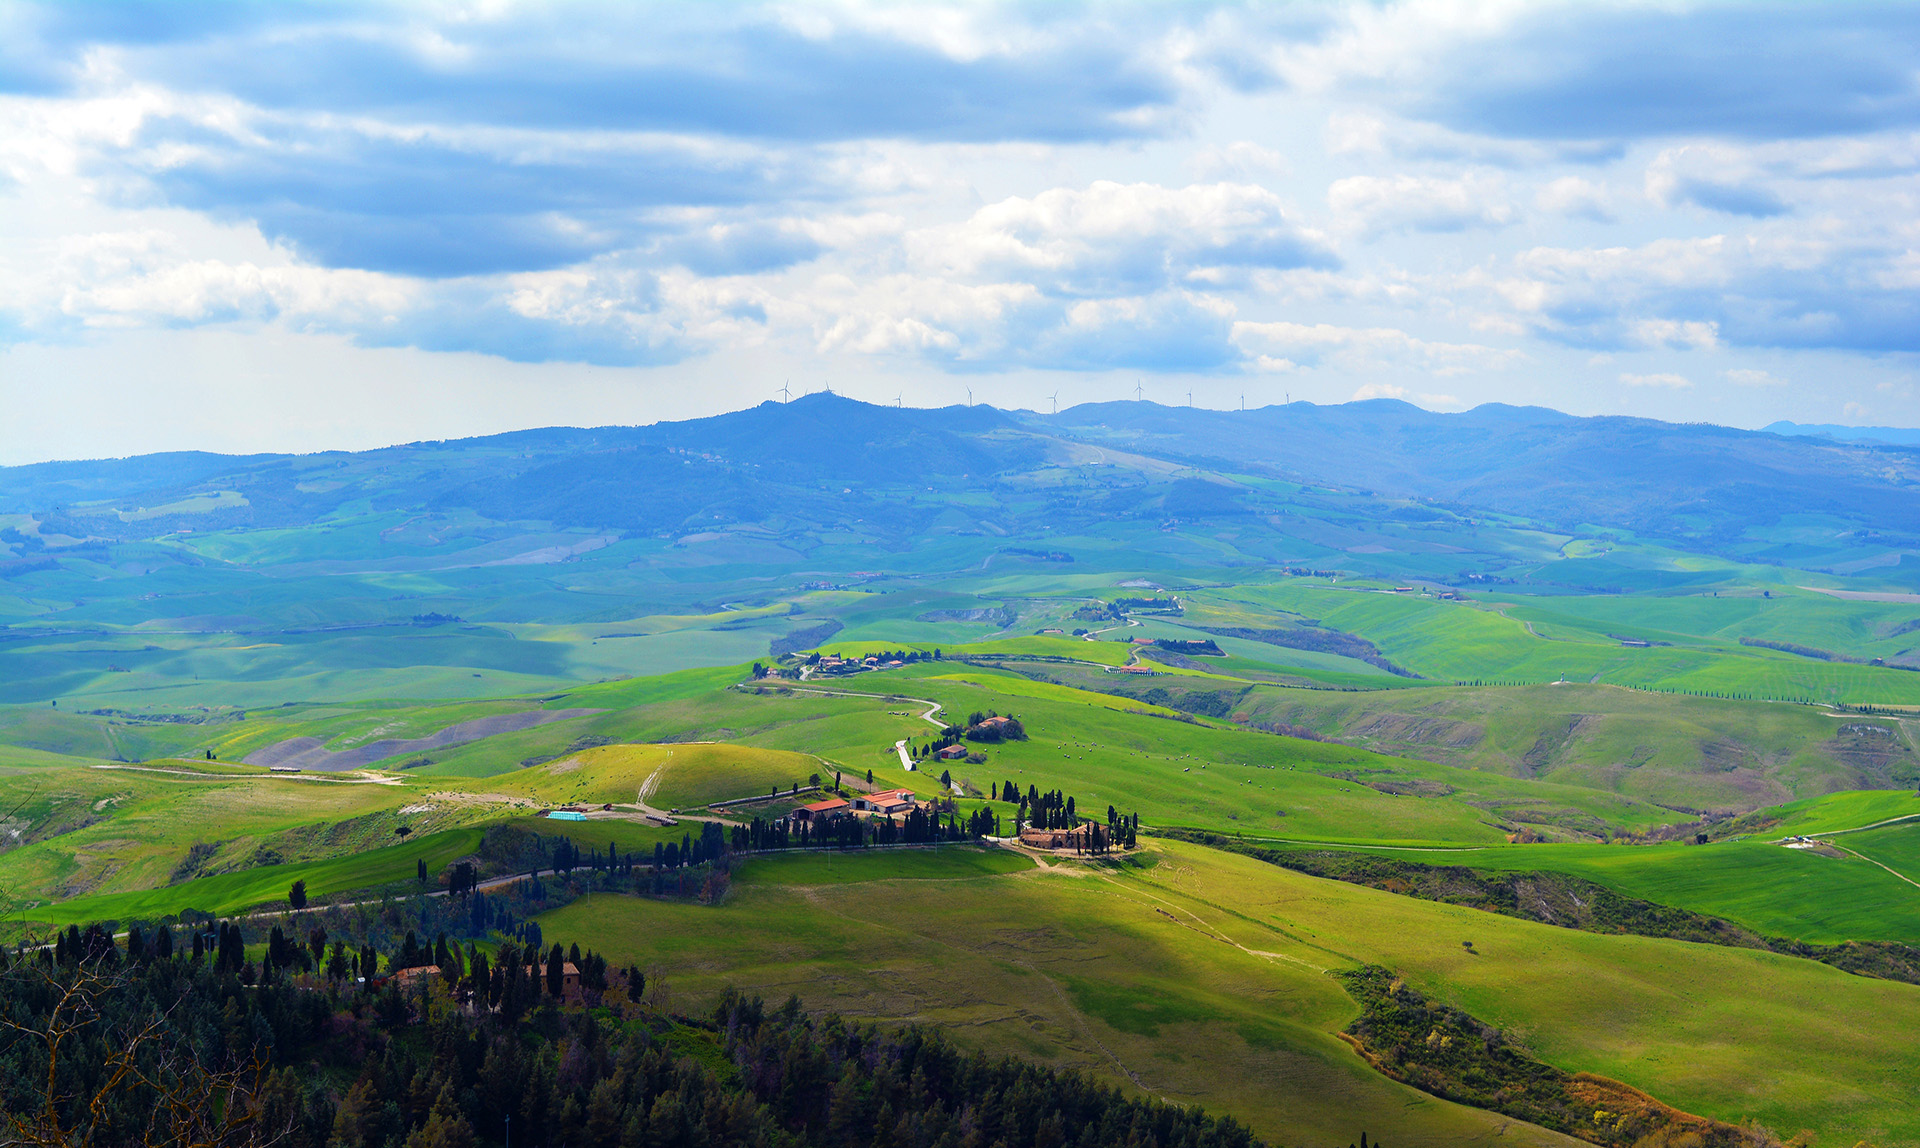 View to the valley from Volterra, Tuscany, Italy.